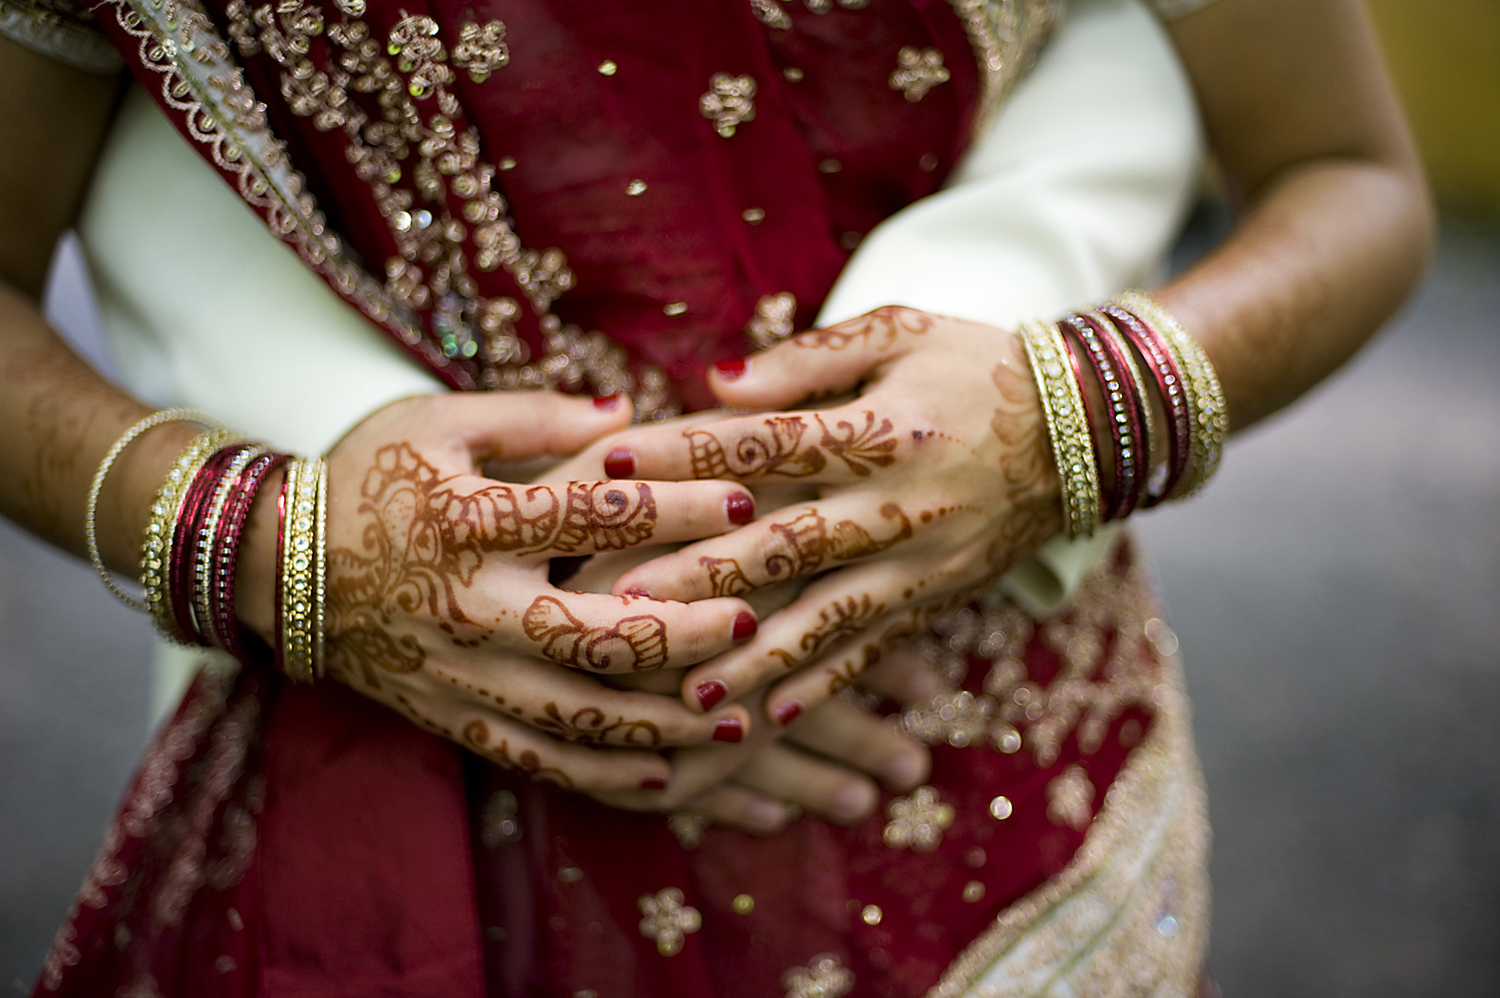 Detail of henna designs on hands of bride before wedding at Grounds for Sculpture. NJ wedding photographers